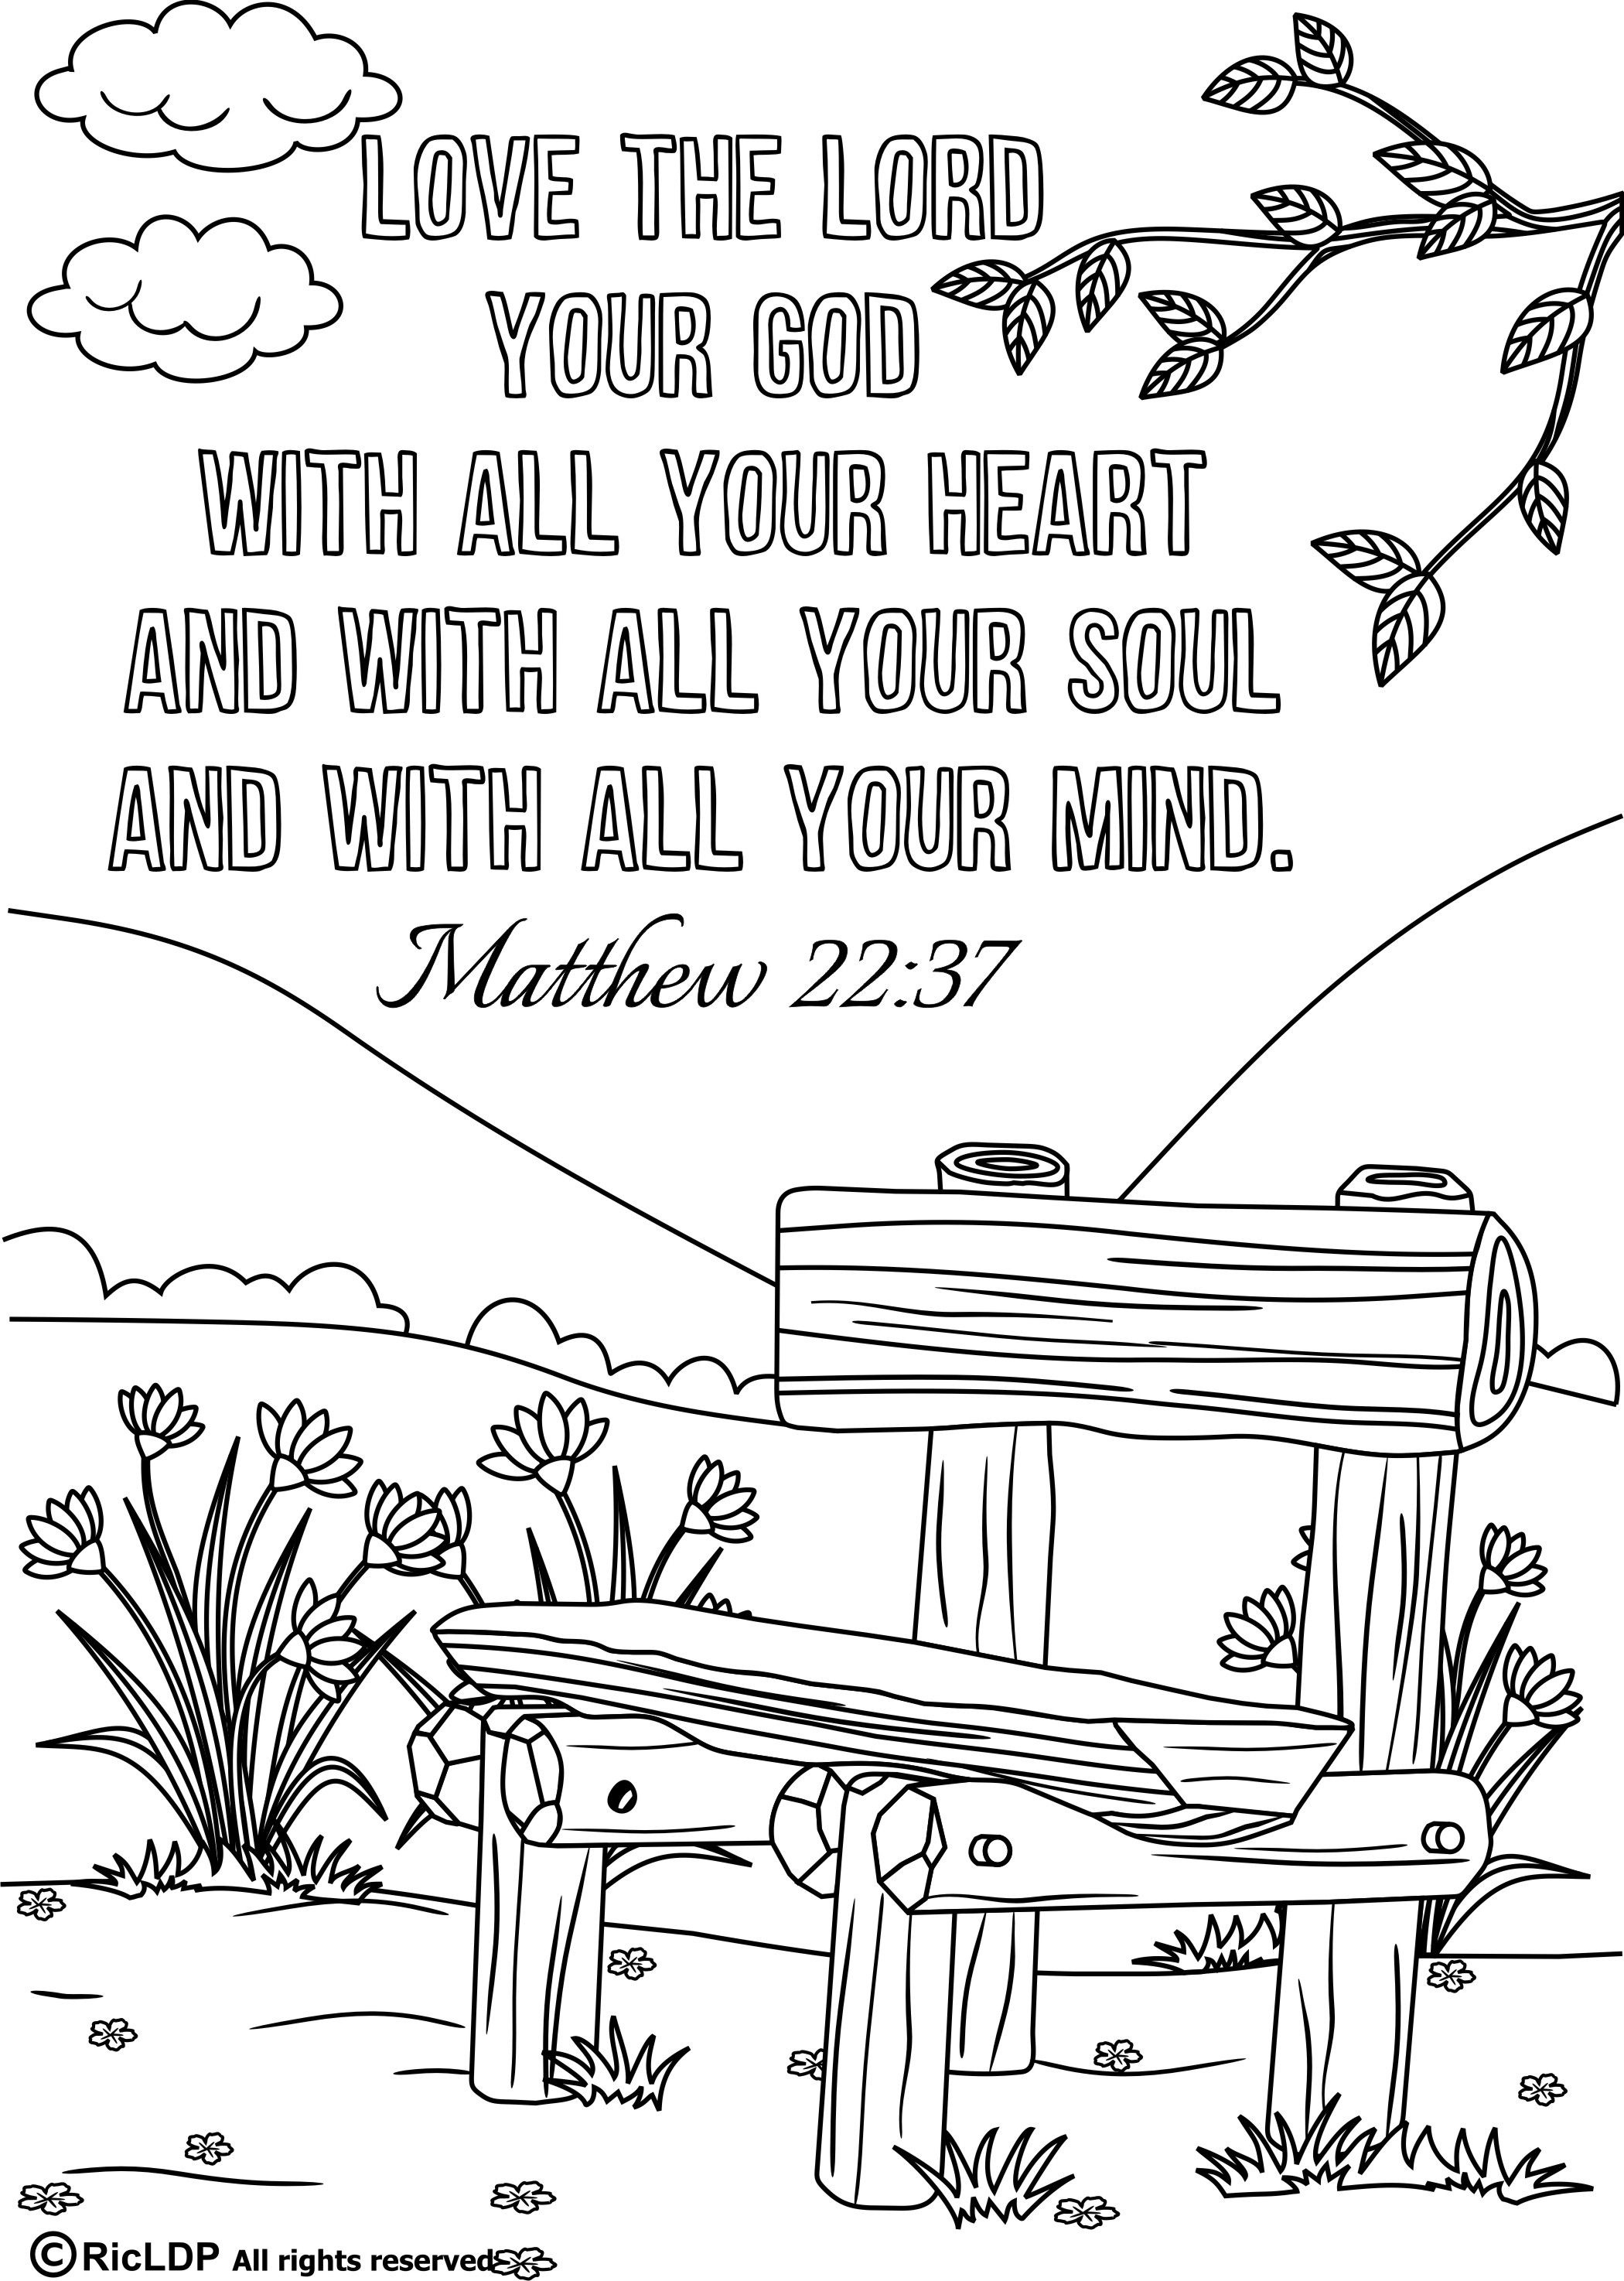 15 Bible Verses Coloring Pages   Christian Coloring Pages-Nt   Bible - Free Printable Bible Coloring Pages With Verses